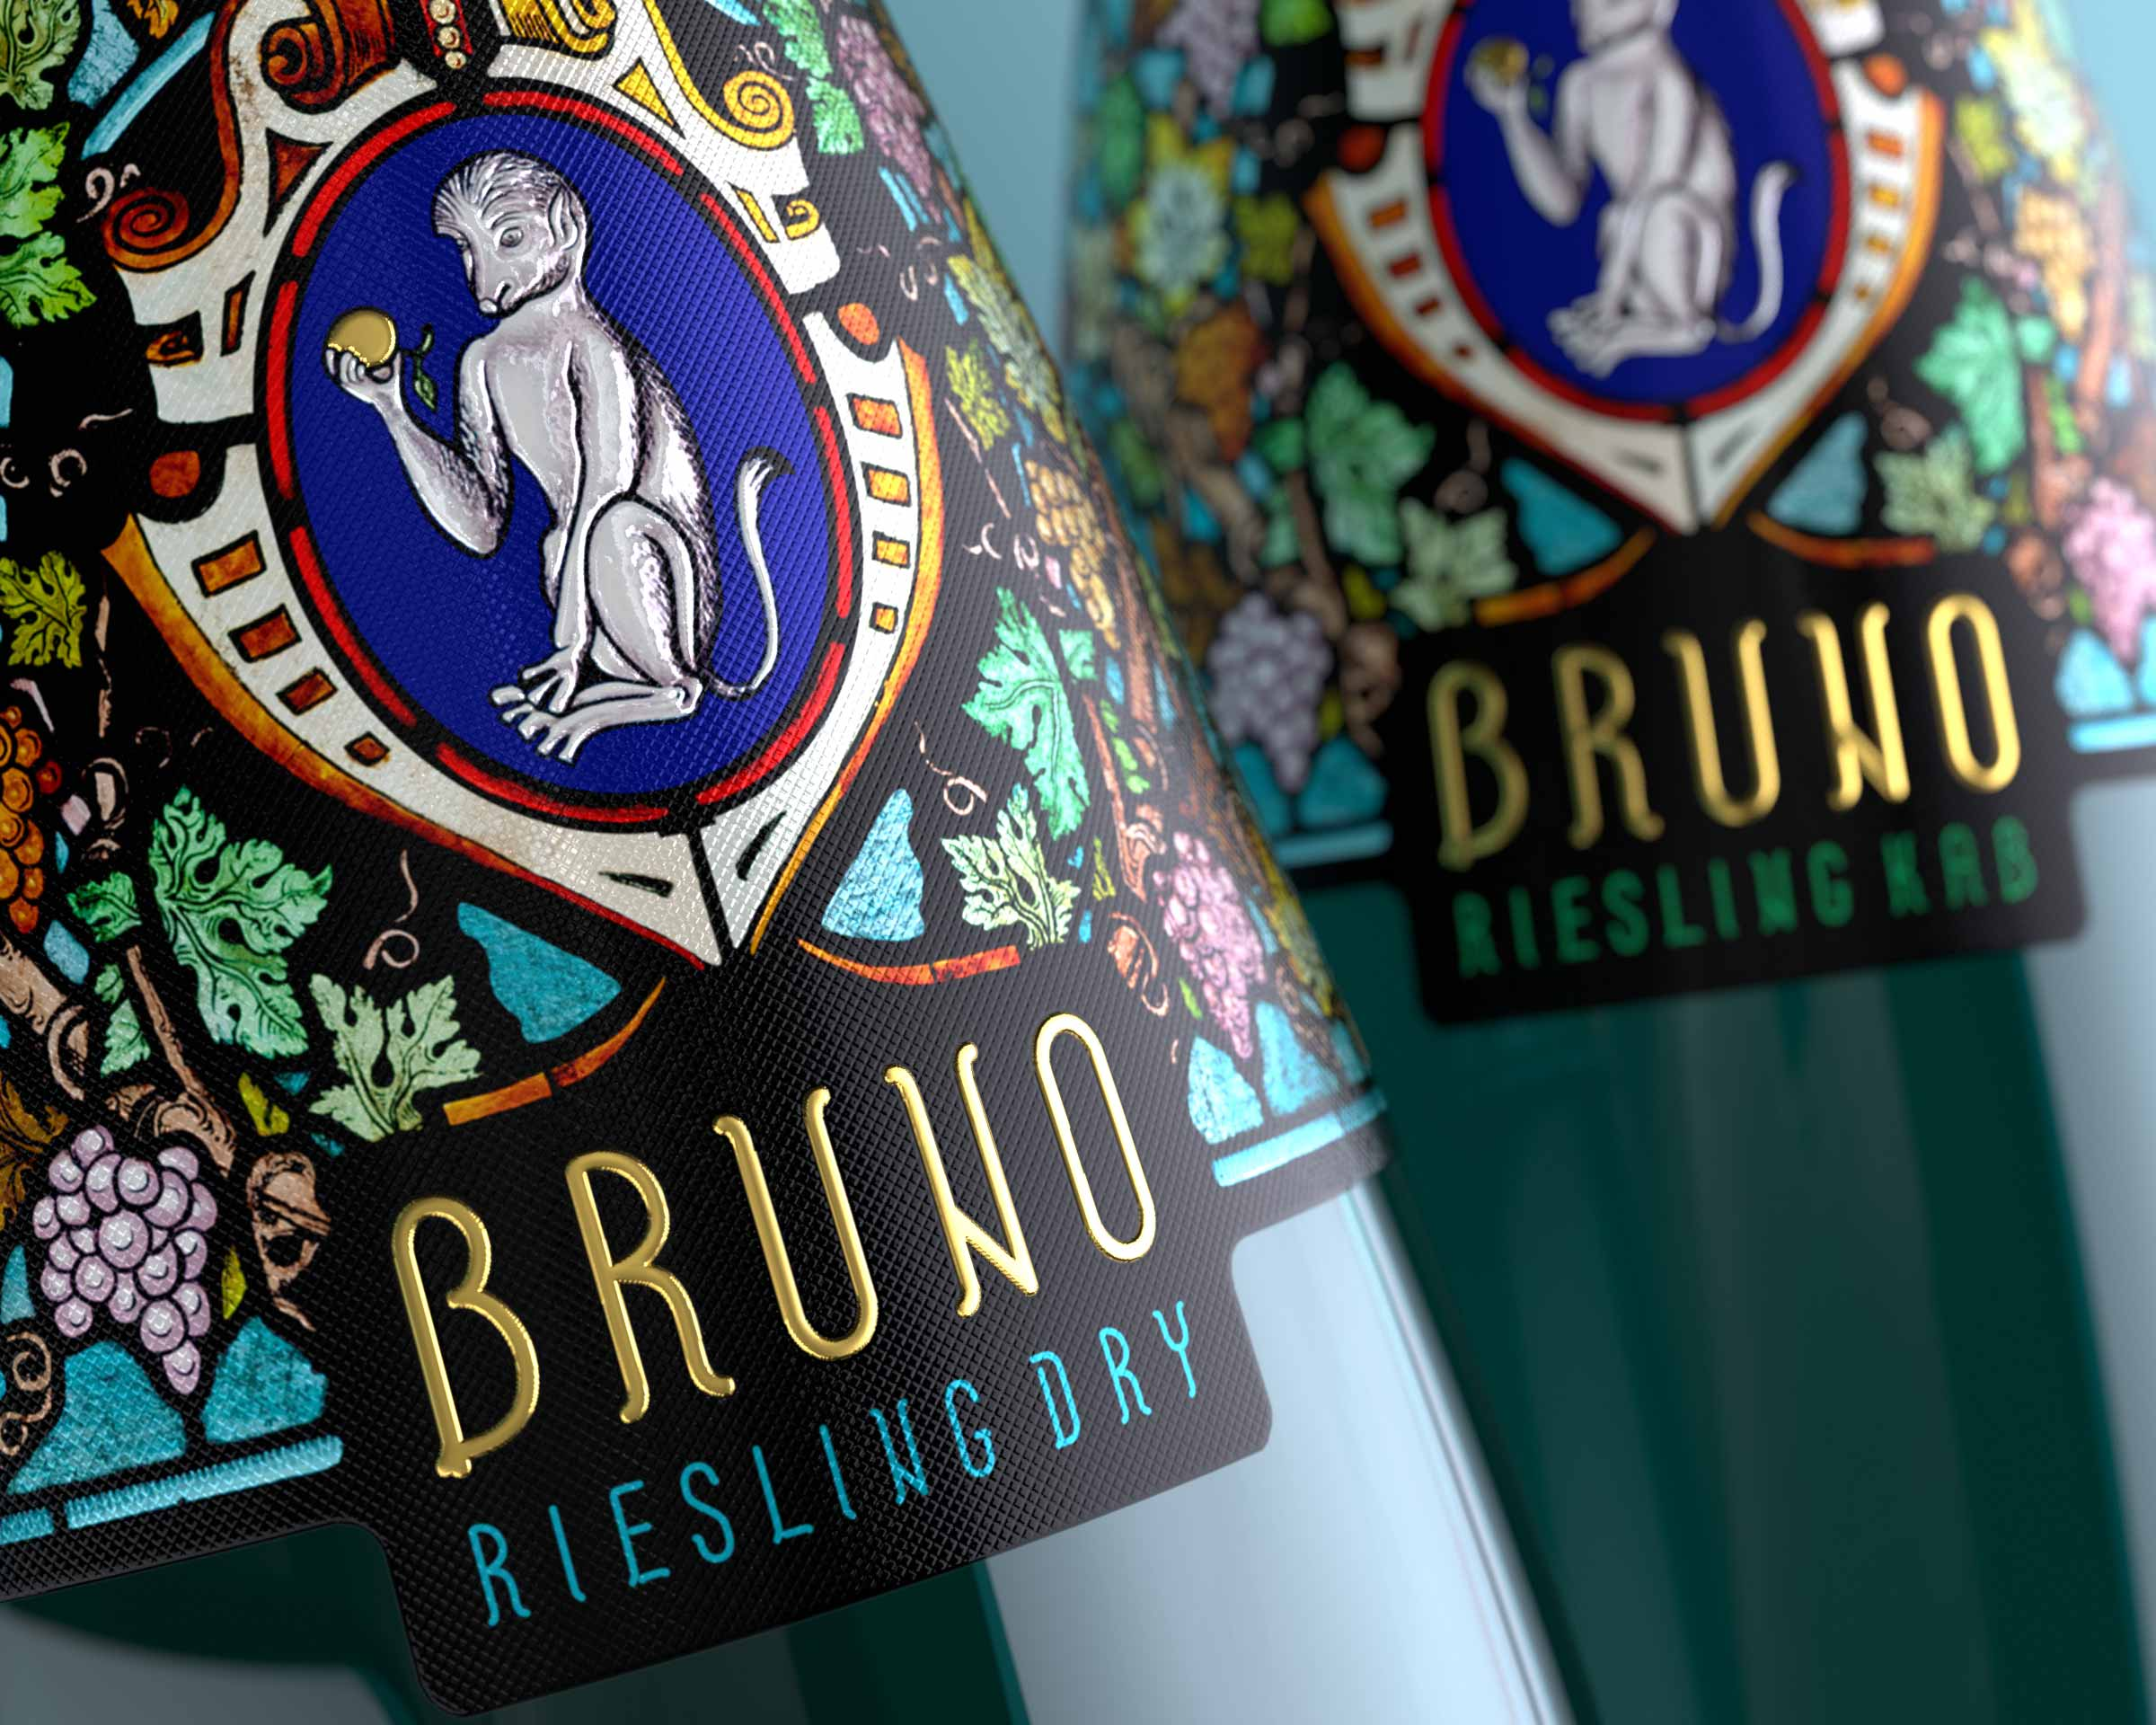 Bruno by Karthäuserhof Rieling Dry and Kab